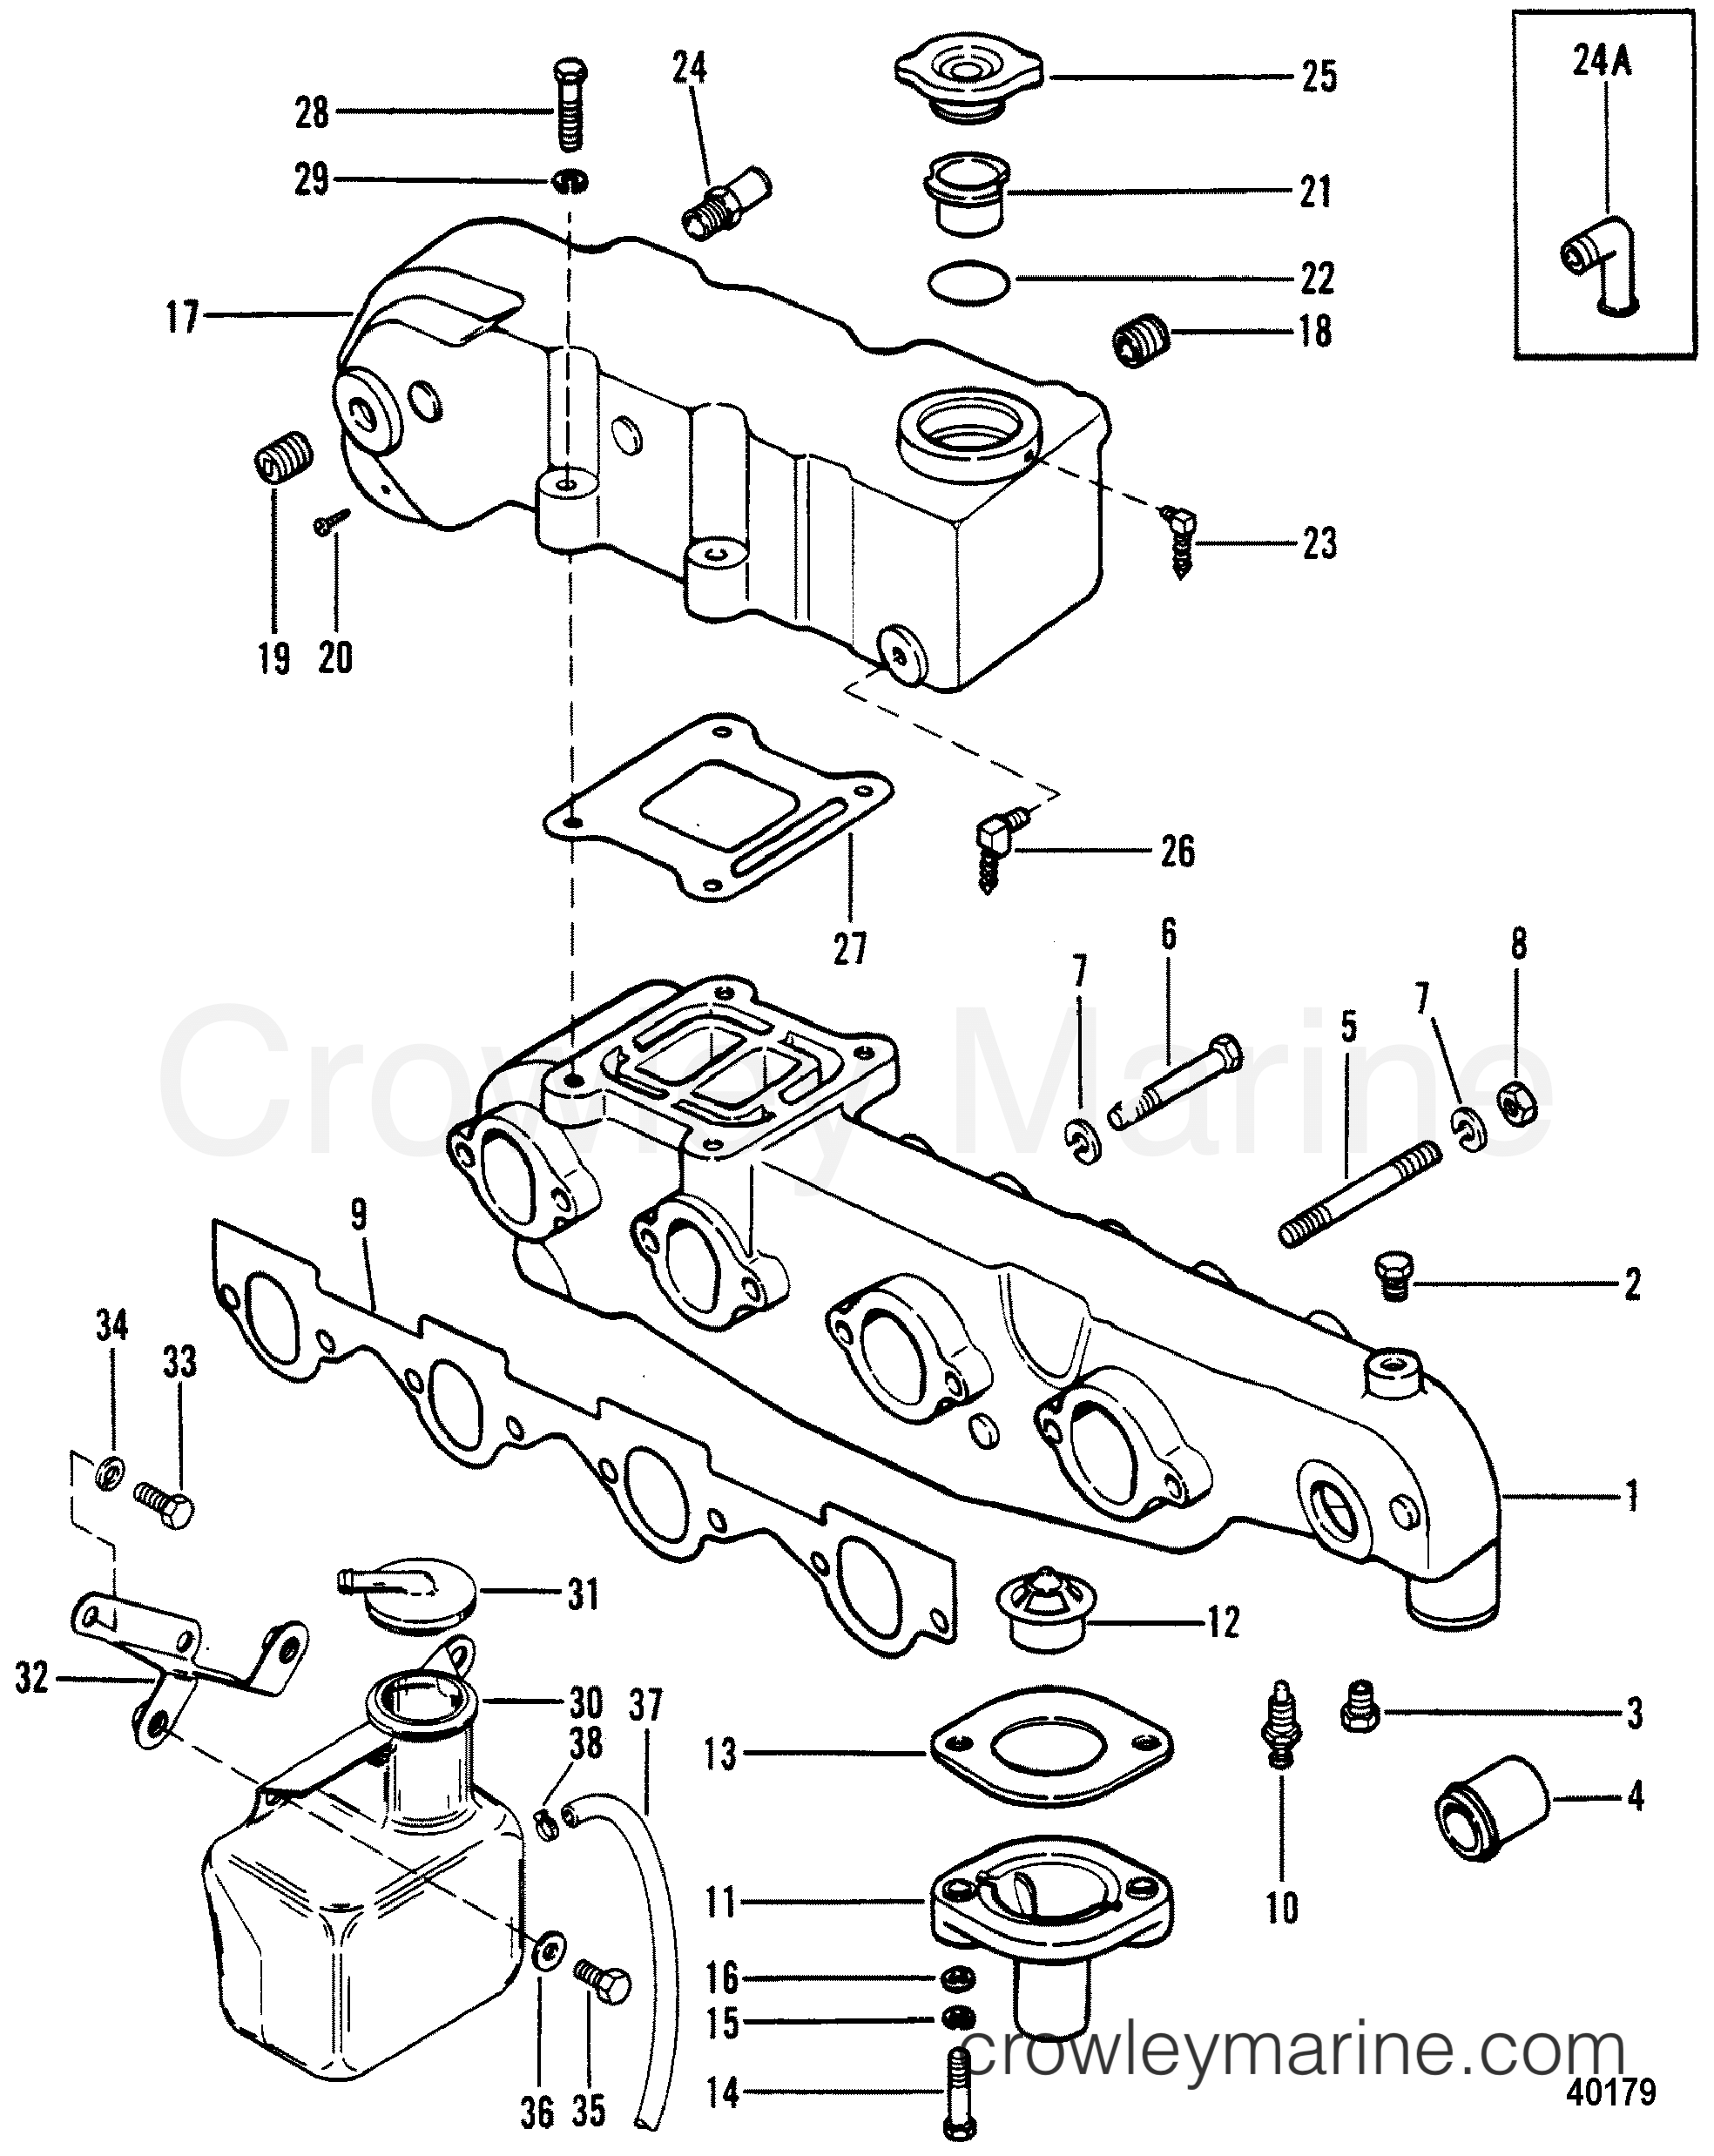 1983 Mercruiser 470 - 04707333 - EXHAUST MANIFOLD AND EXHAUST ELBOW section